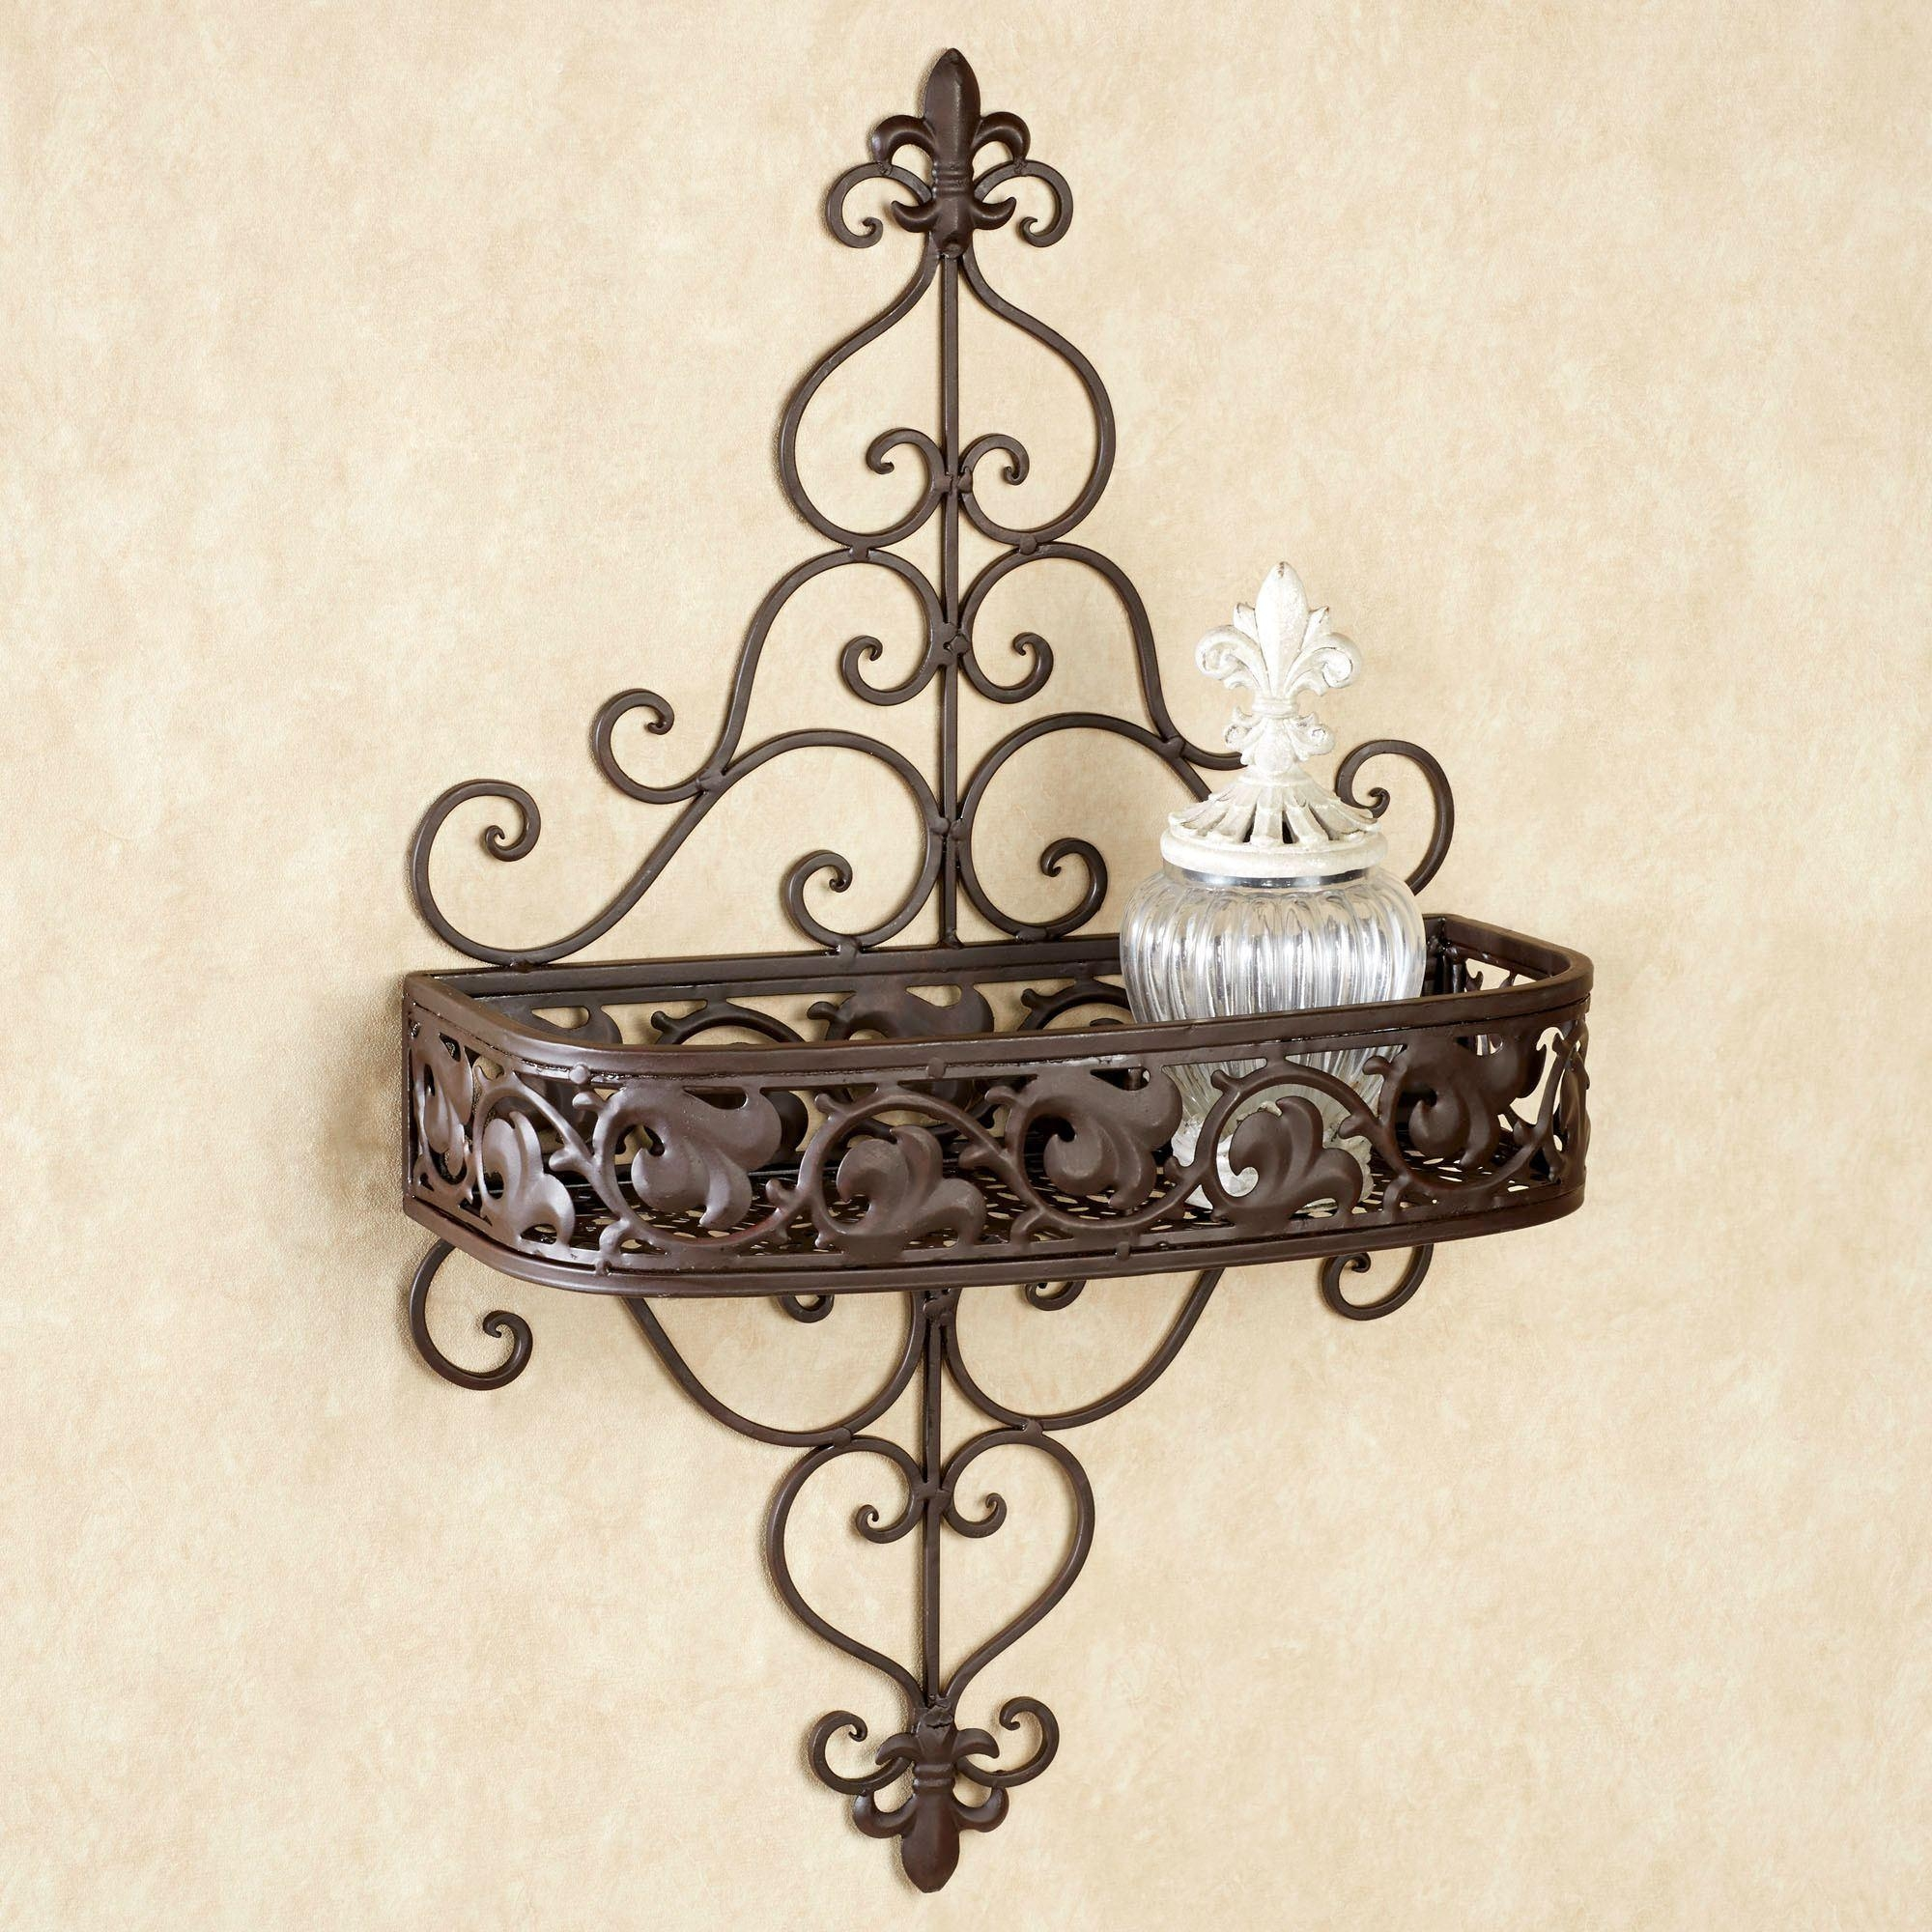 Fleur De Lis Metal Wall Shelf For Fleur De Lis Metal Wall Art (Image 6 of 20)